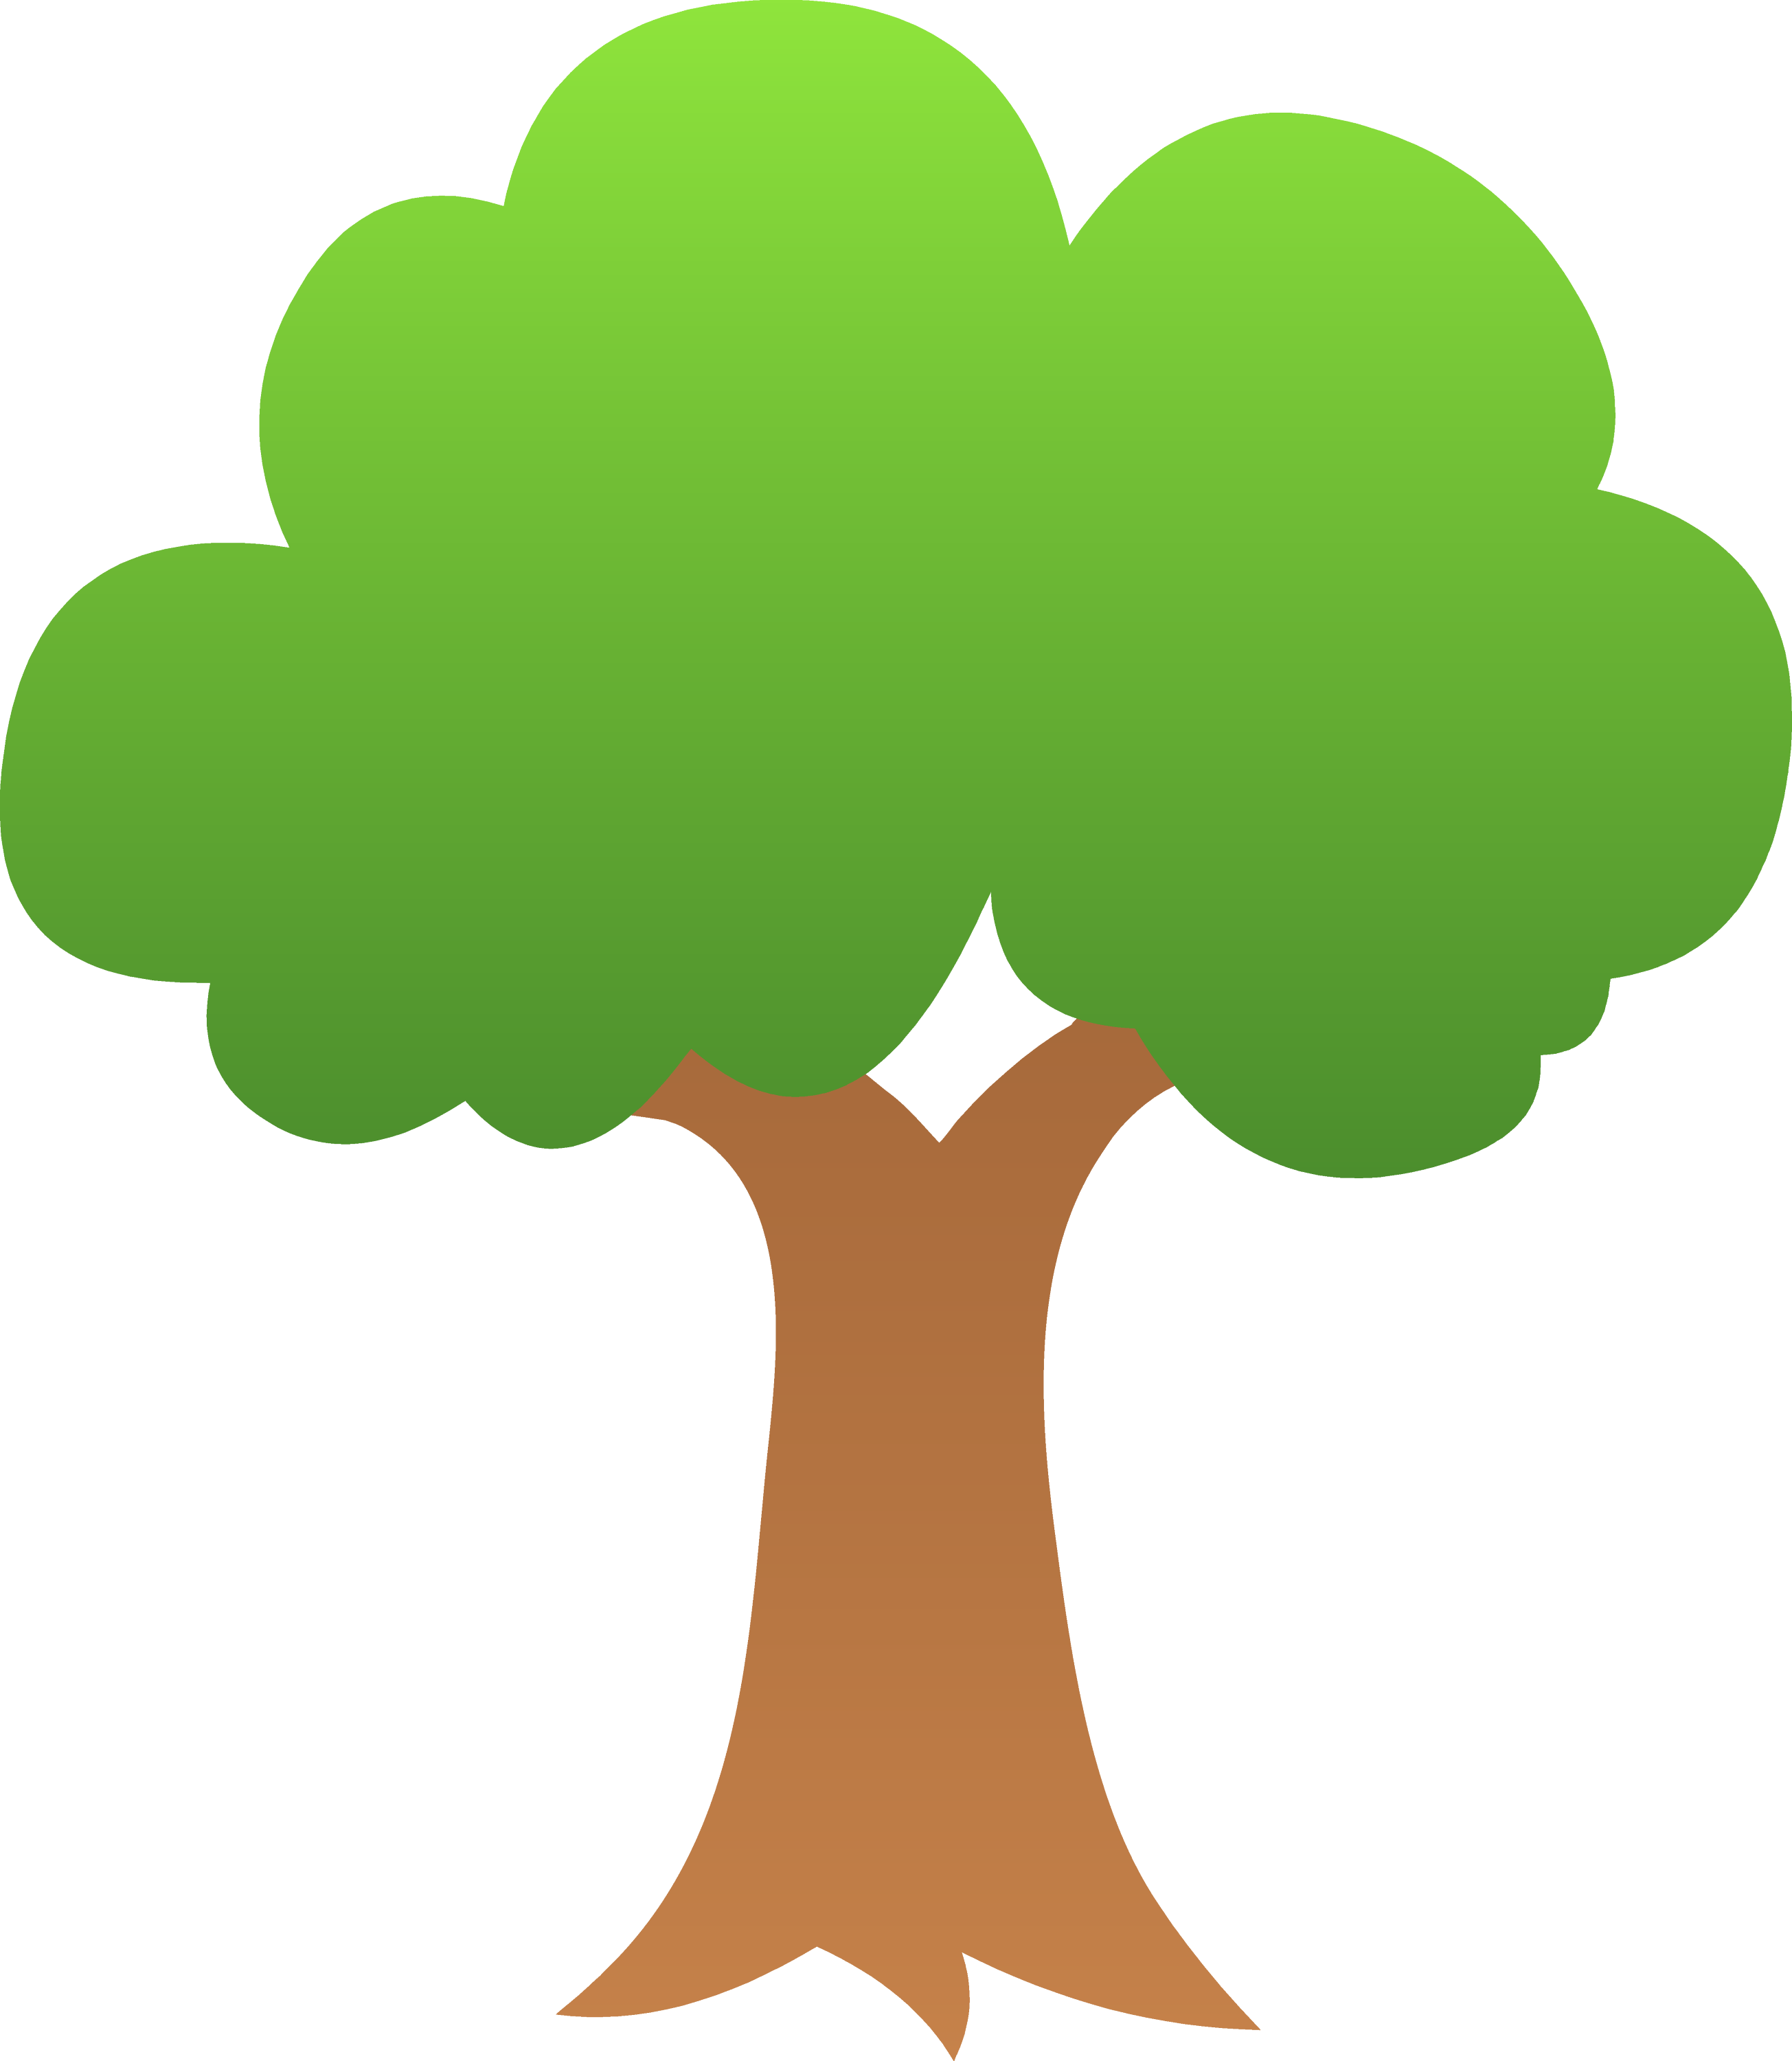 cute green tree design free clip art